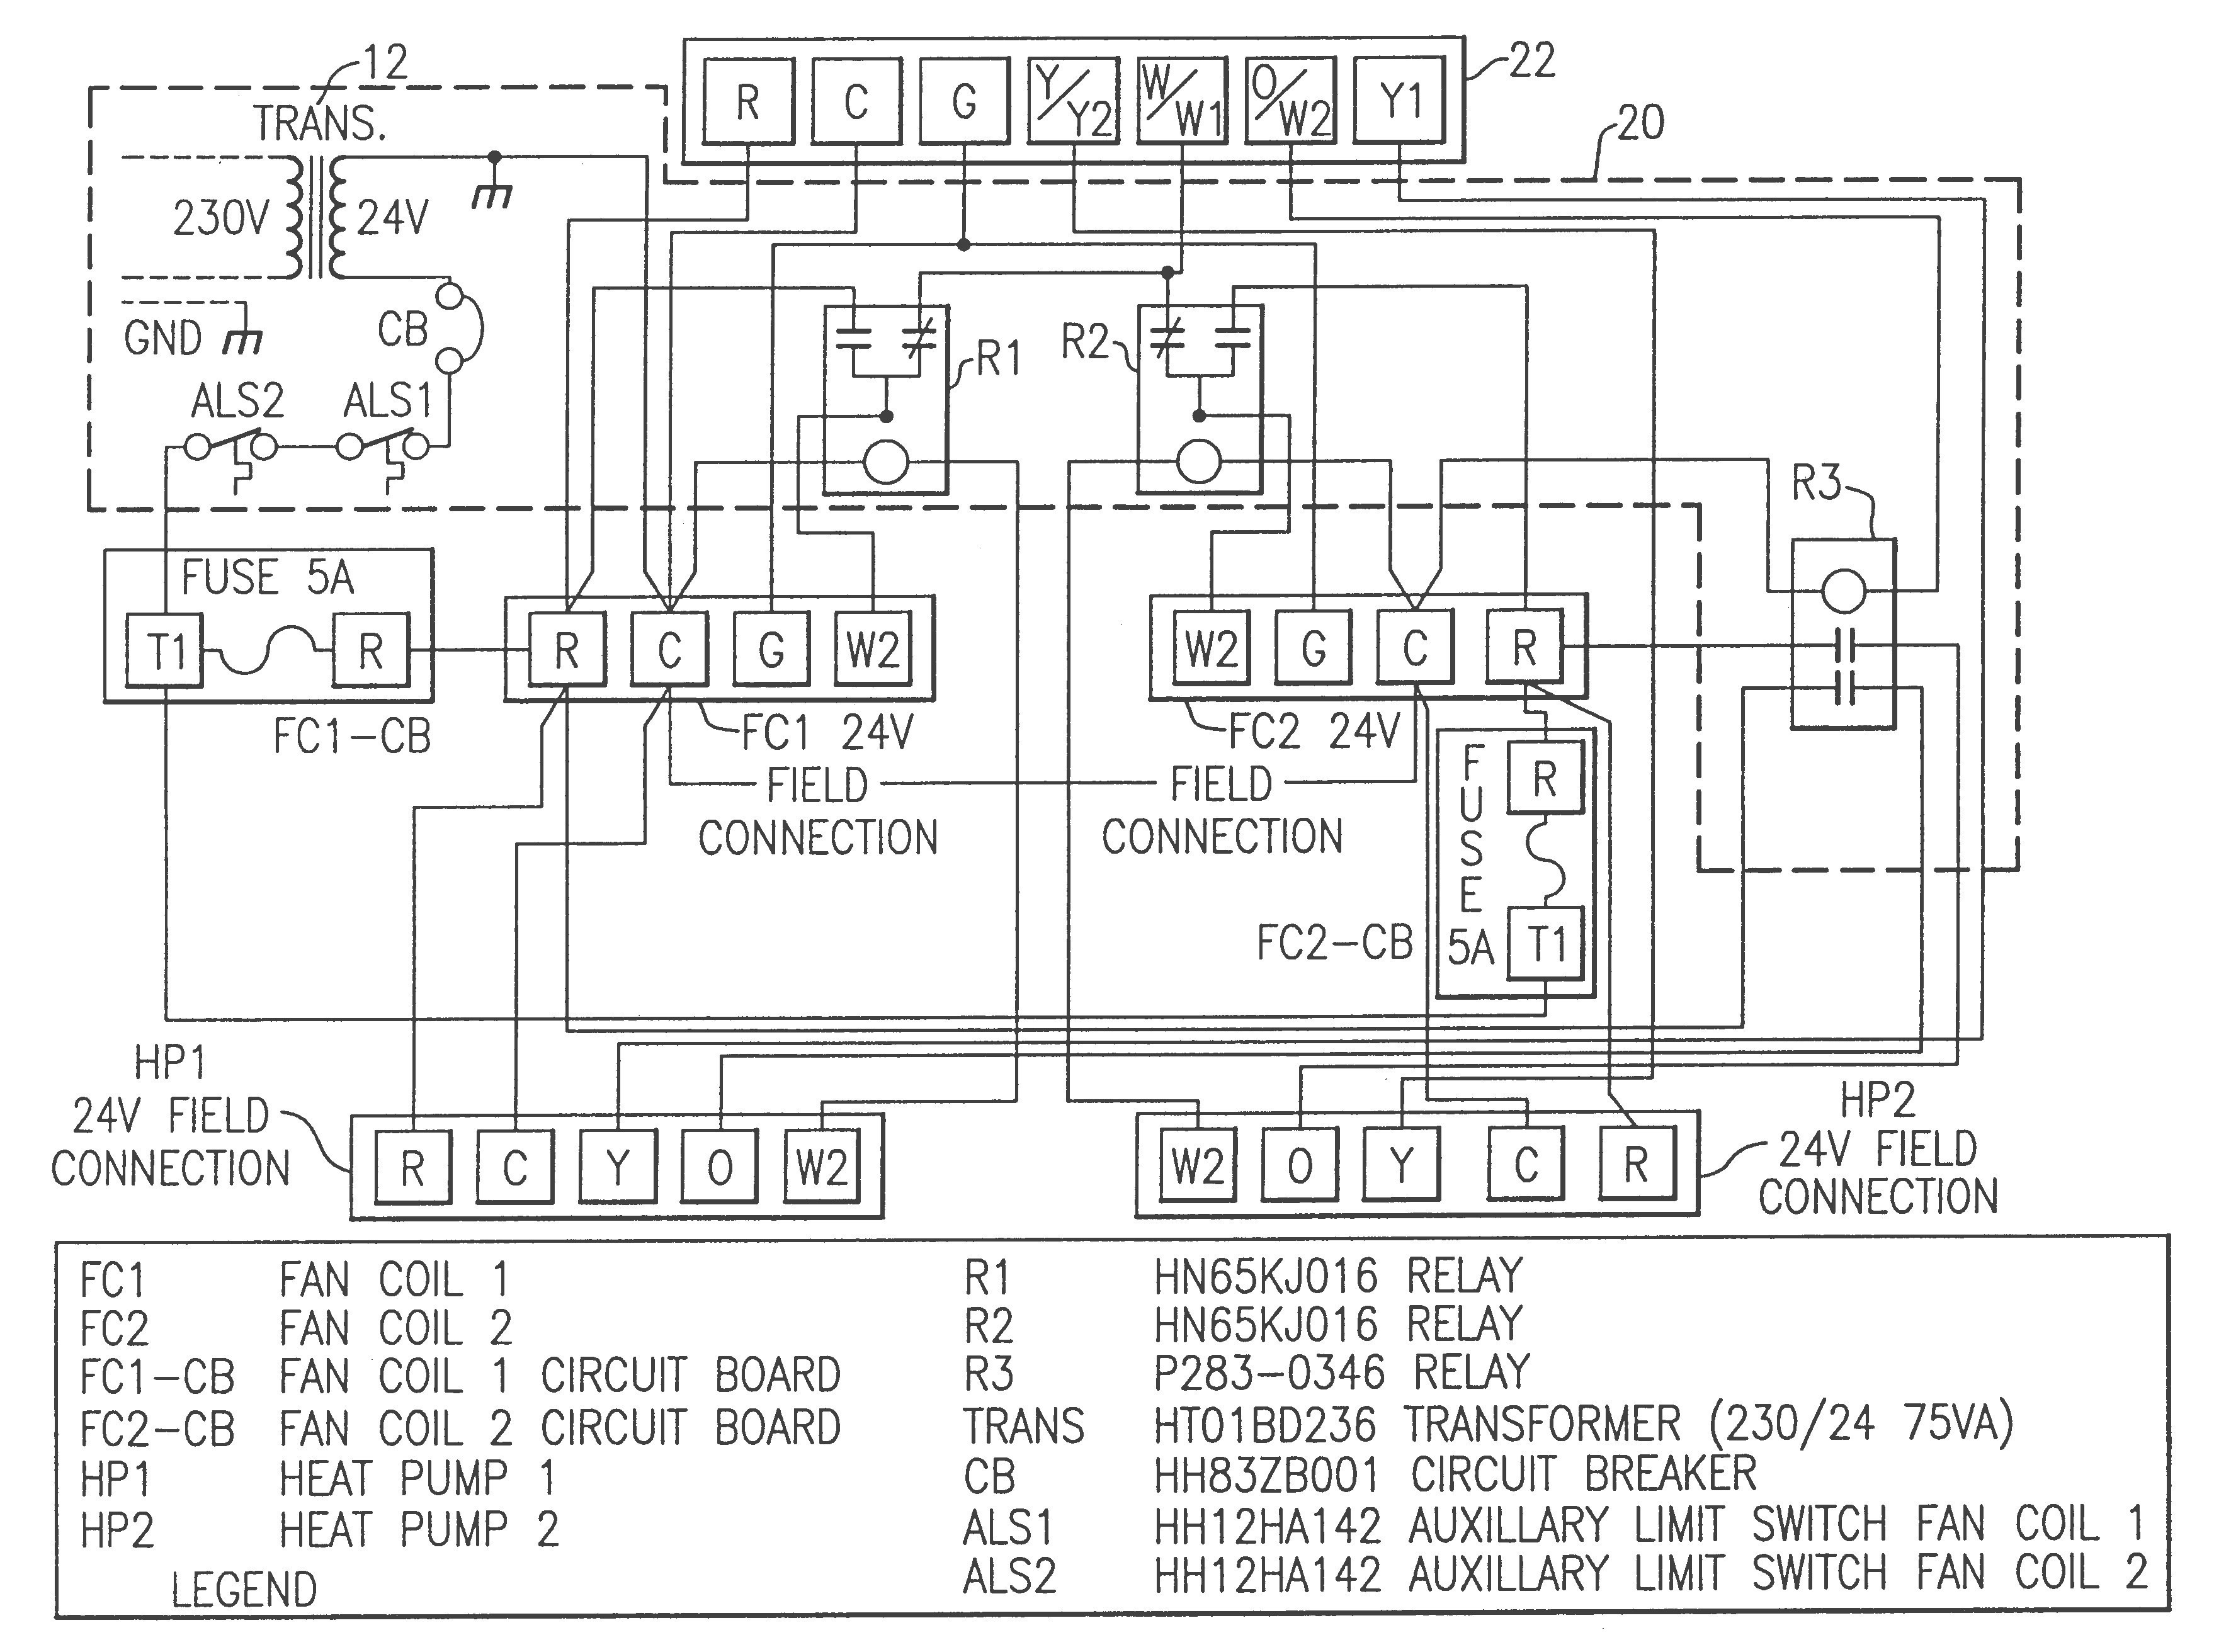 goodman heat pump package unit wiring diagram of pressure on the ocean with depth gallery sample pics detail name electric strip inspirational